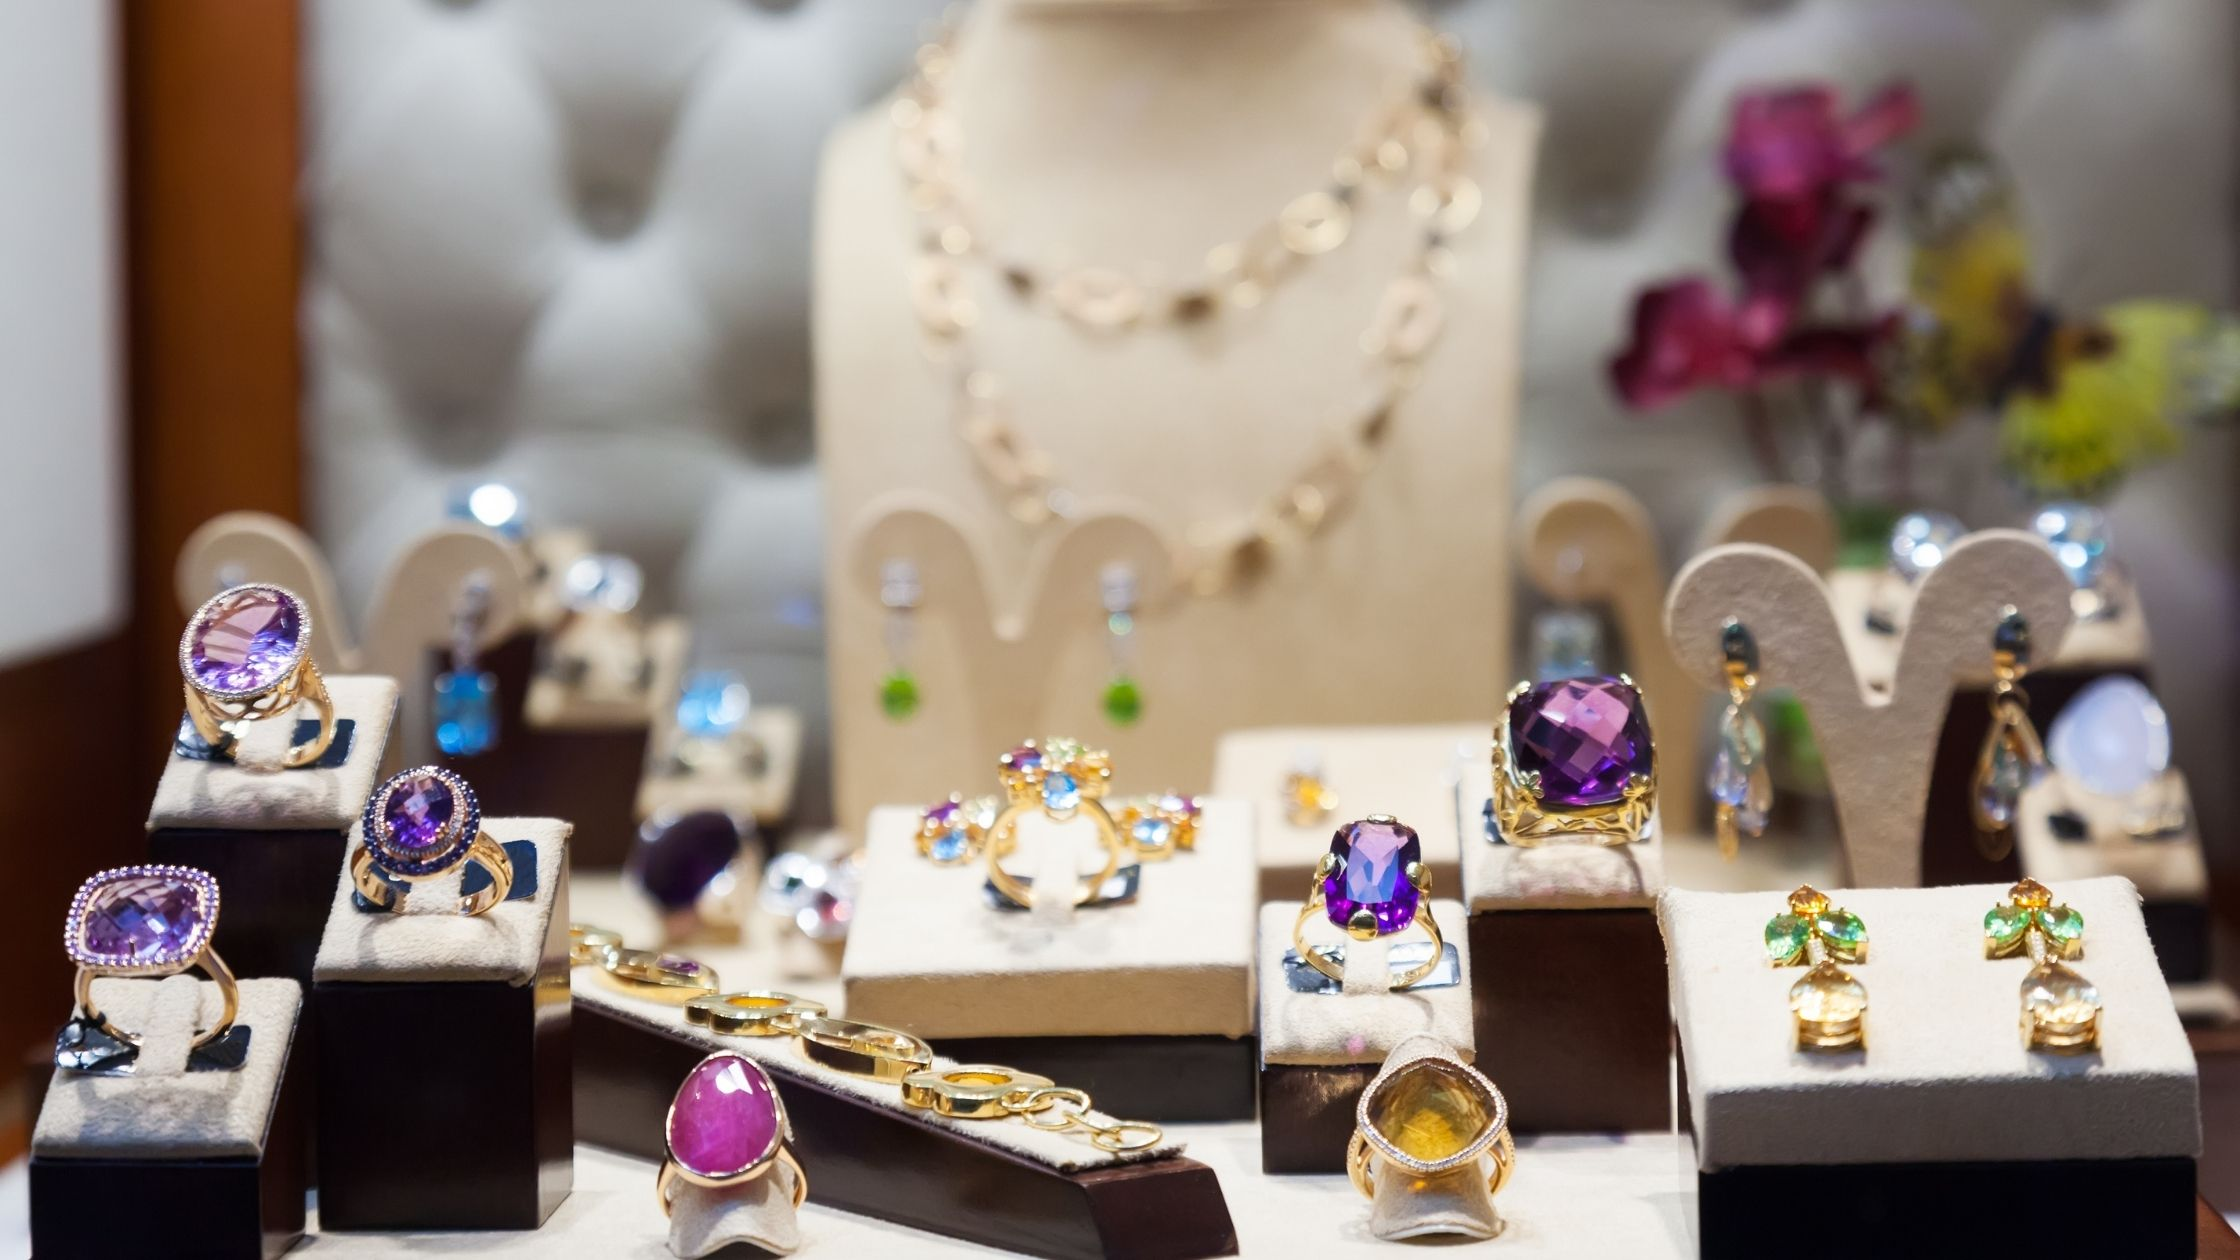 Social Media Content Strategy: Launching a New Collection for the Holiday Season